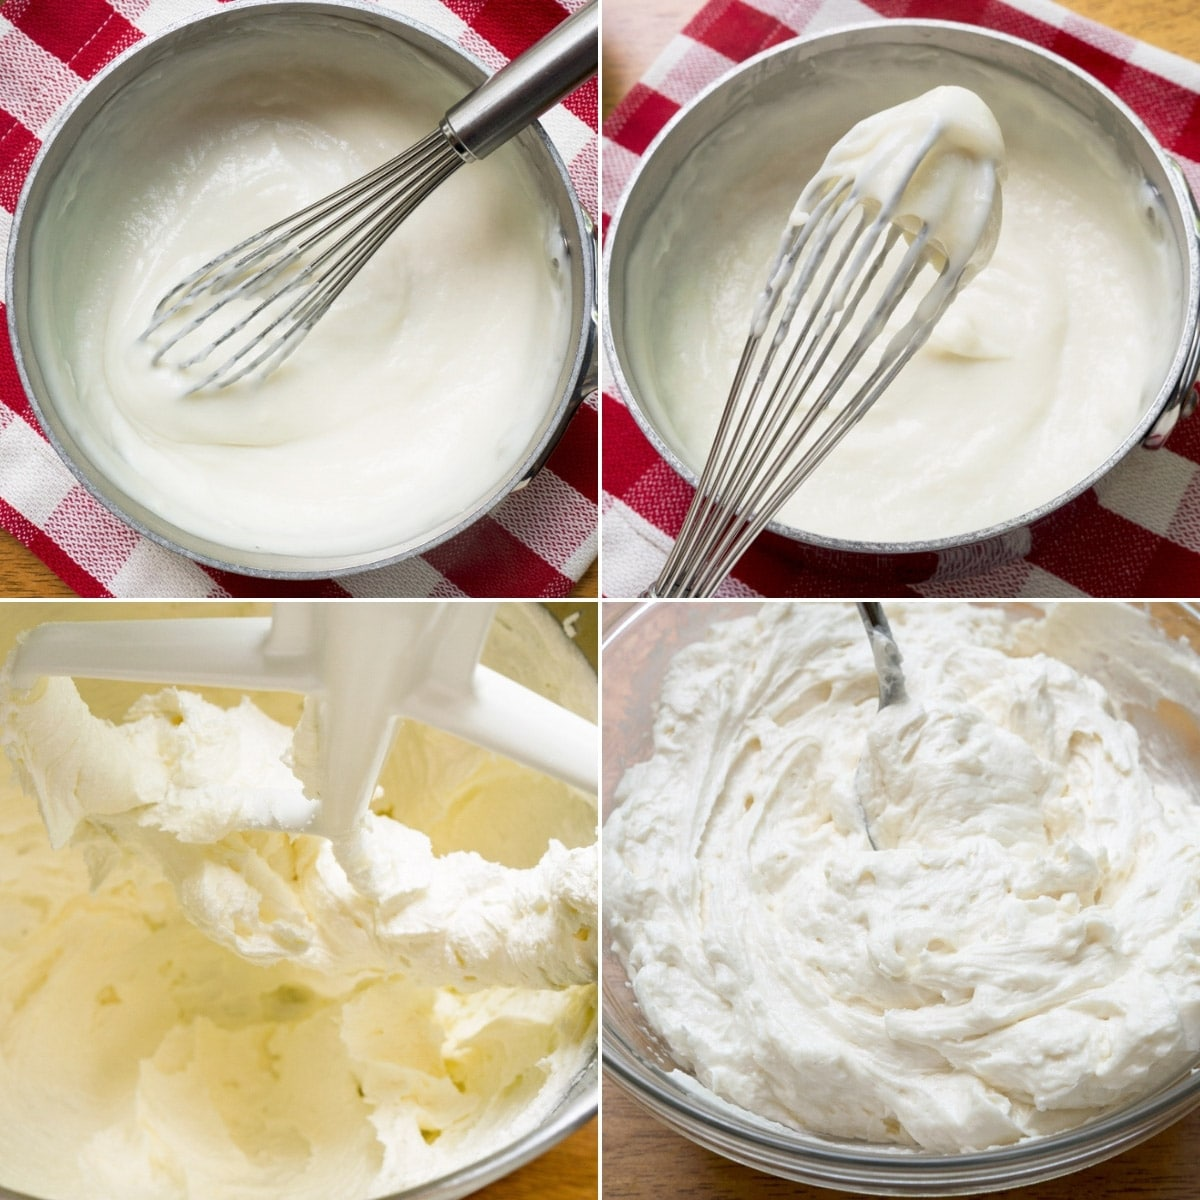 four photos showing the process of making ermine icing